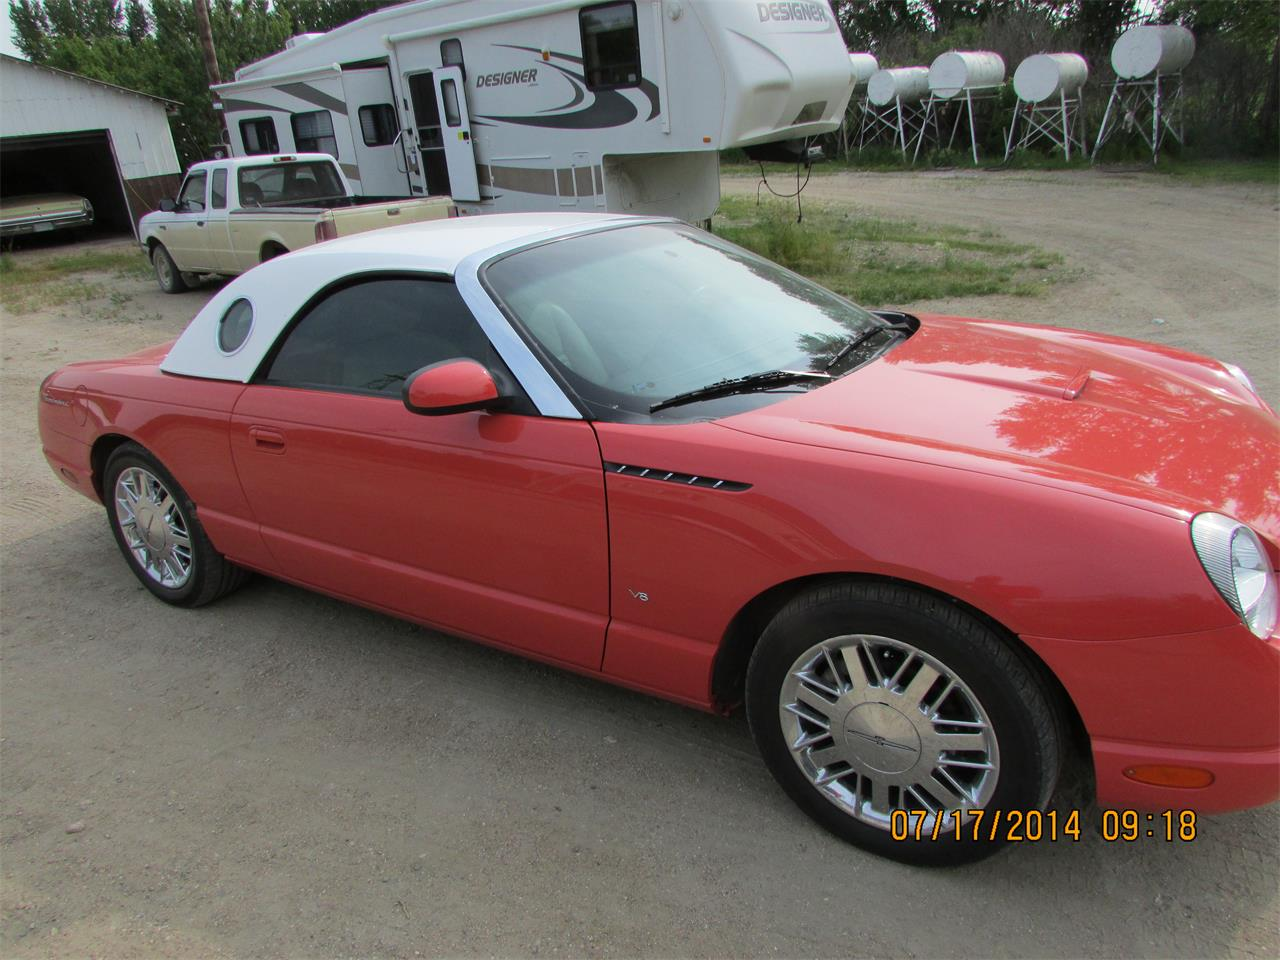 Large Picture of 2003 Thunderbird located in Saskatchewan - $33,000.00 Offered by a Private Seller - NT1X